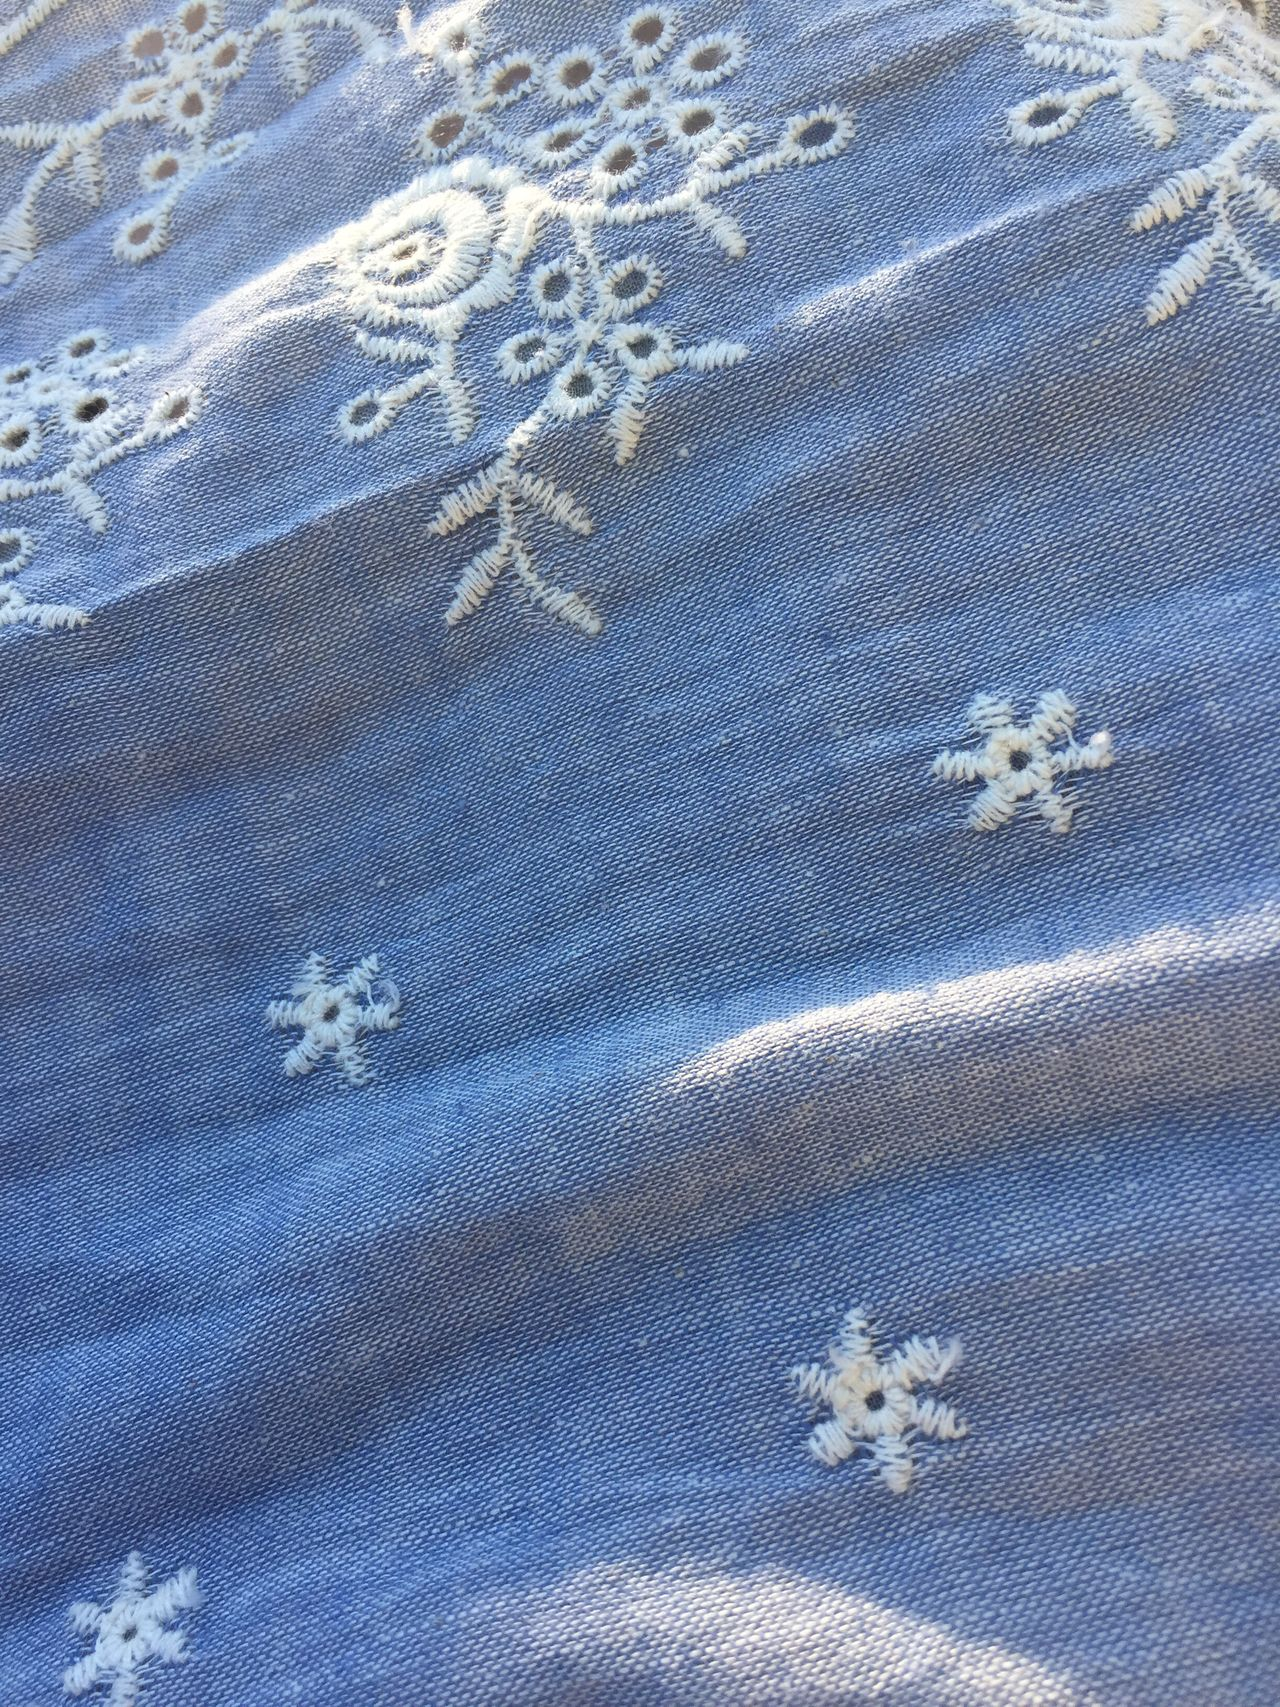 No People Textile High Angle View Fabric Backgrounds Pattern Day Full Frame Blue Close-up Indoors  Snowflake Nature